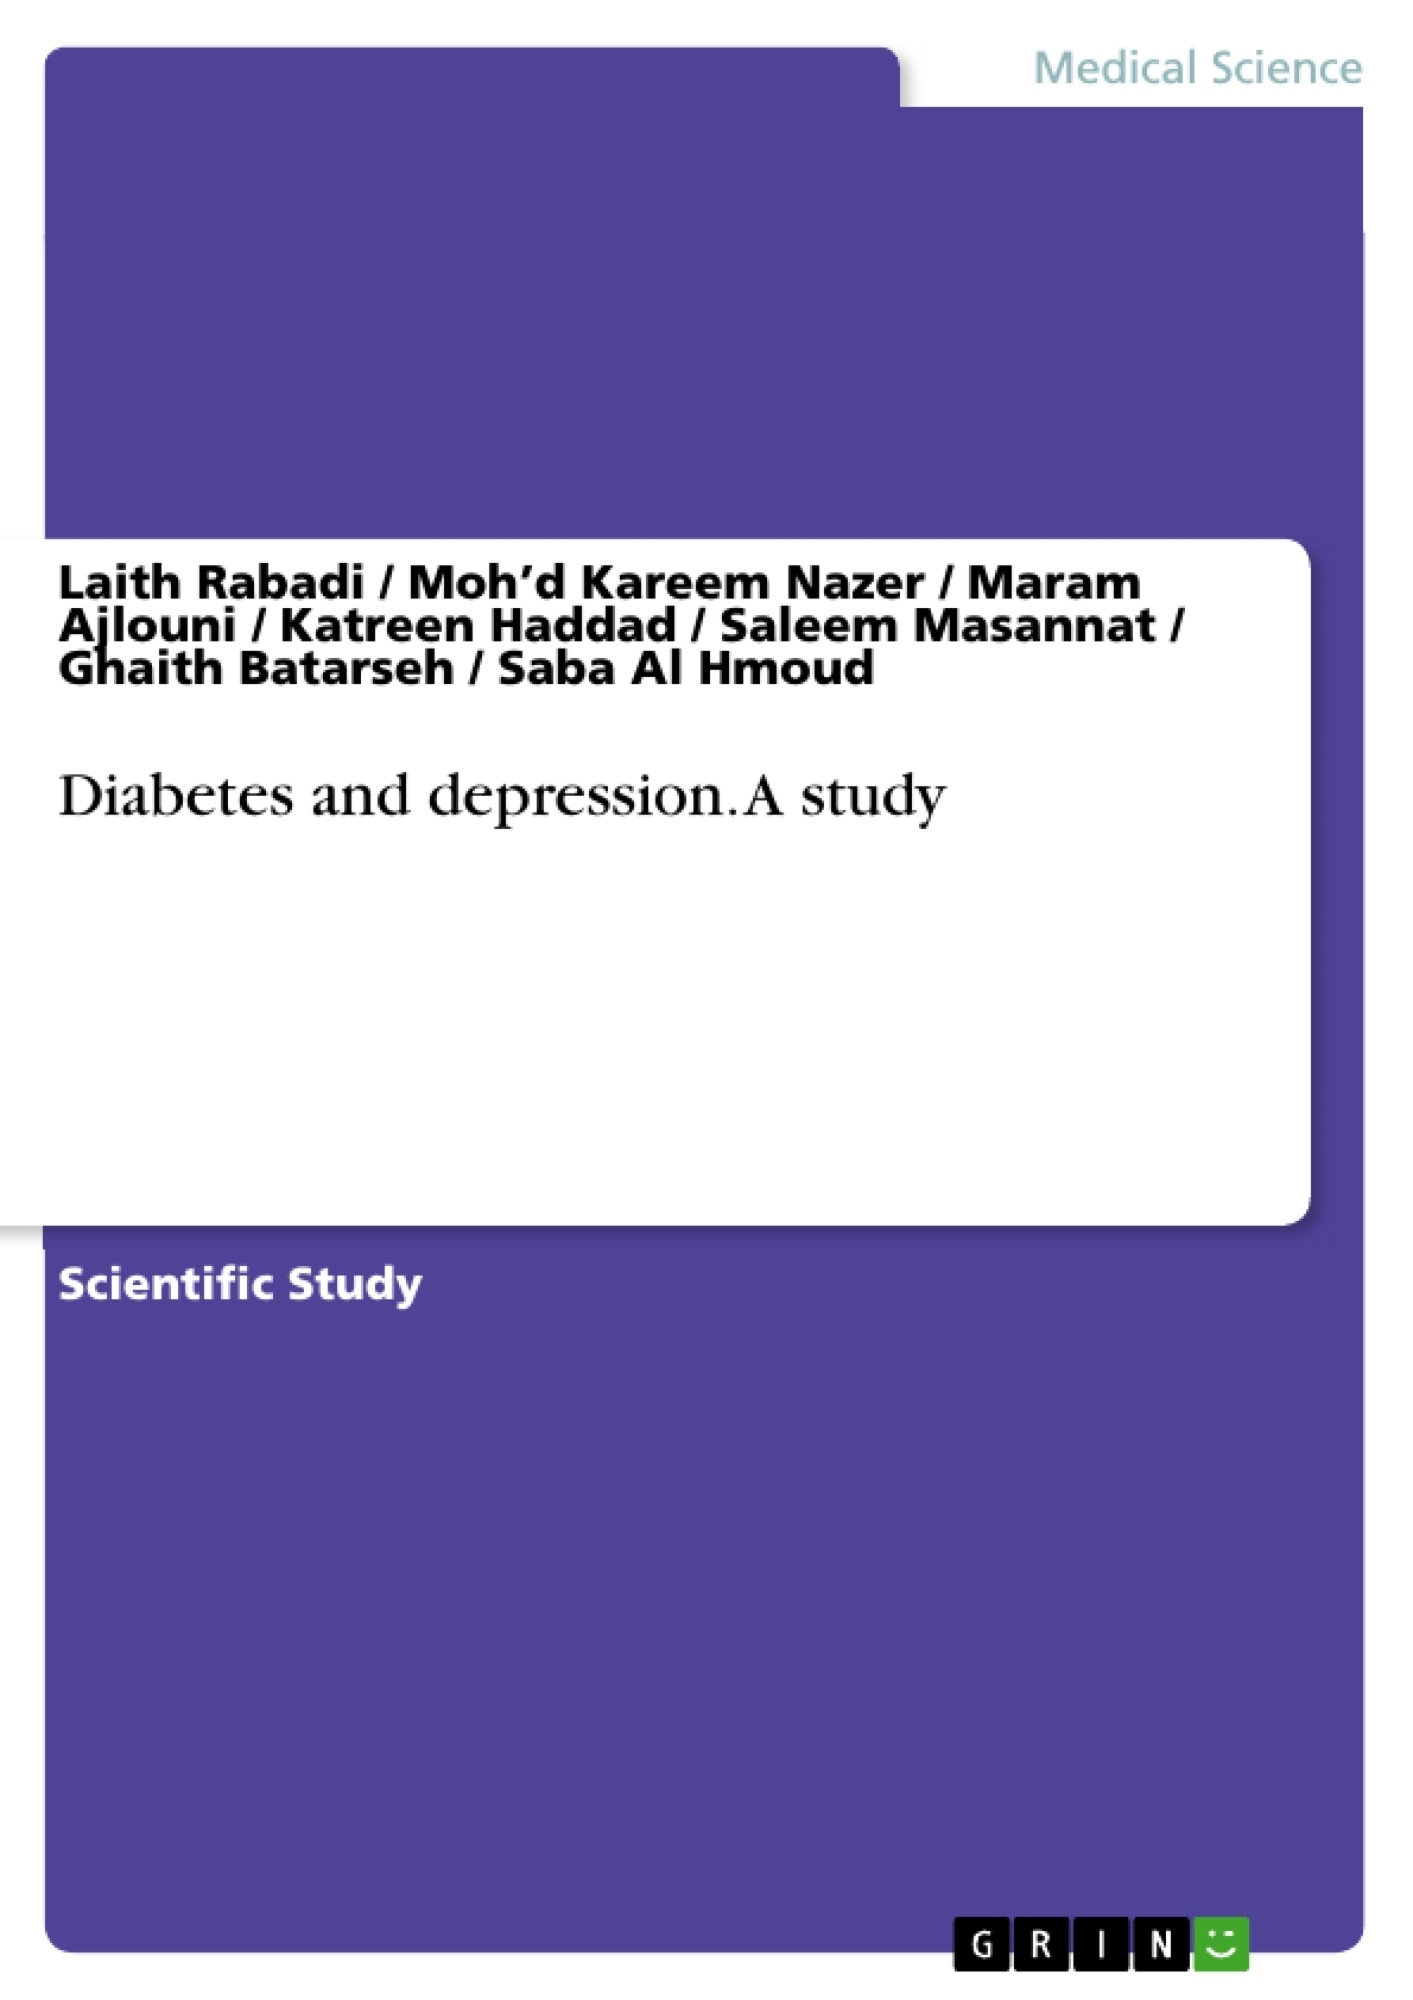 Title: Diabetes and depression. A study